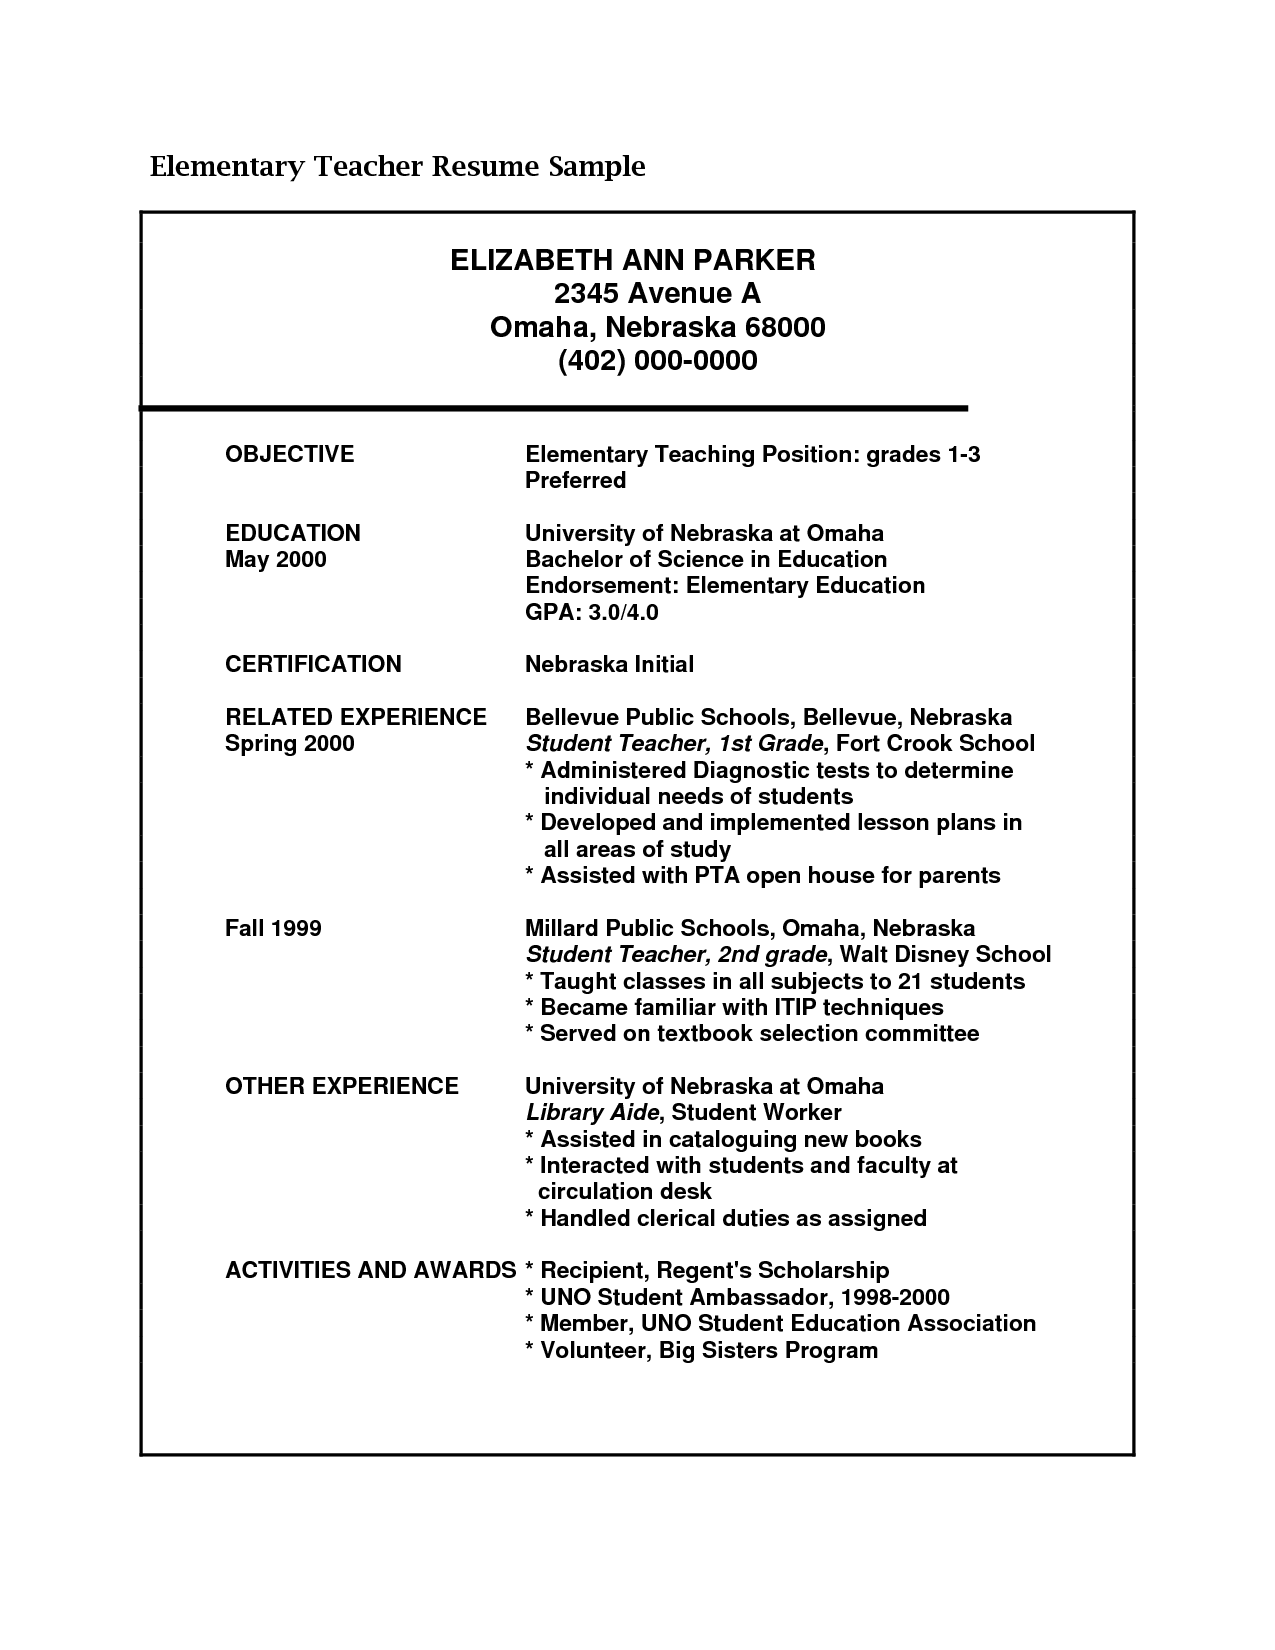 resume Elementary Teacher Resume admin teacher resume exampleselementary examples exampleshigh school resume